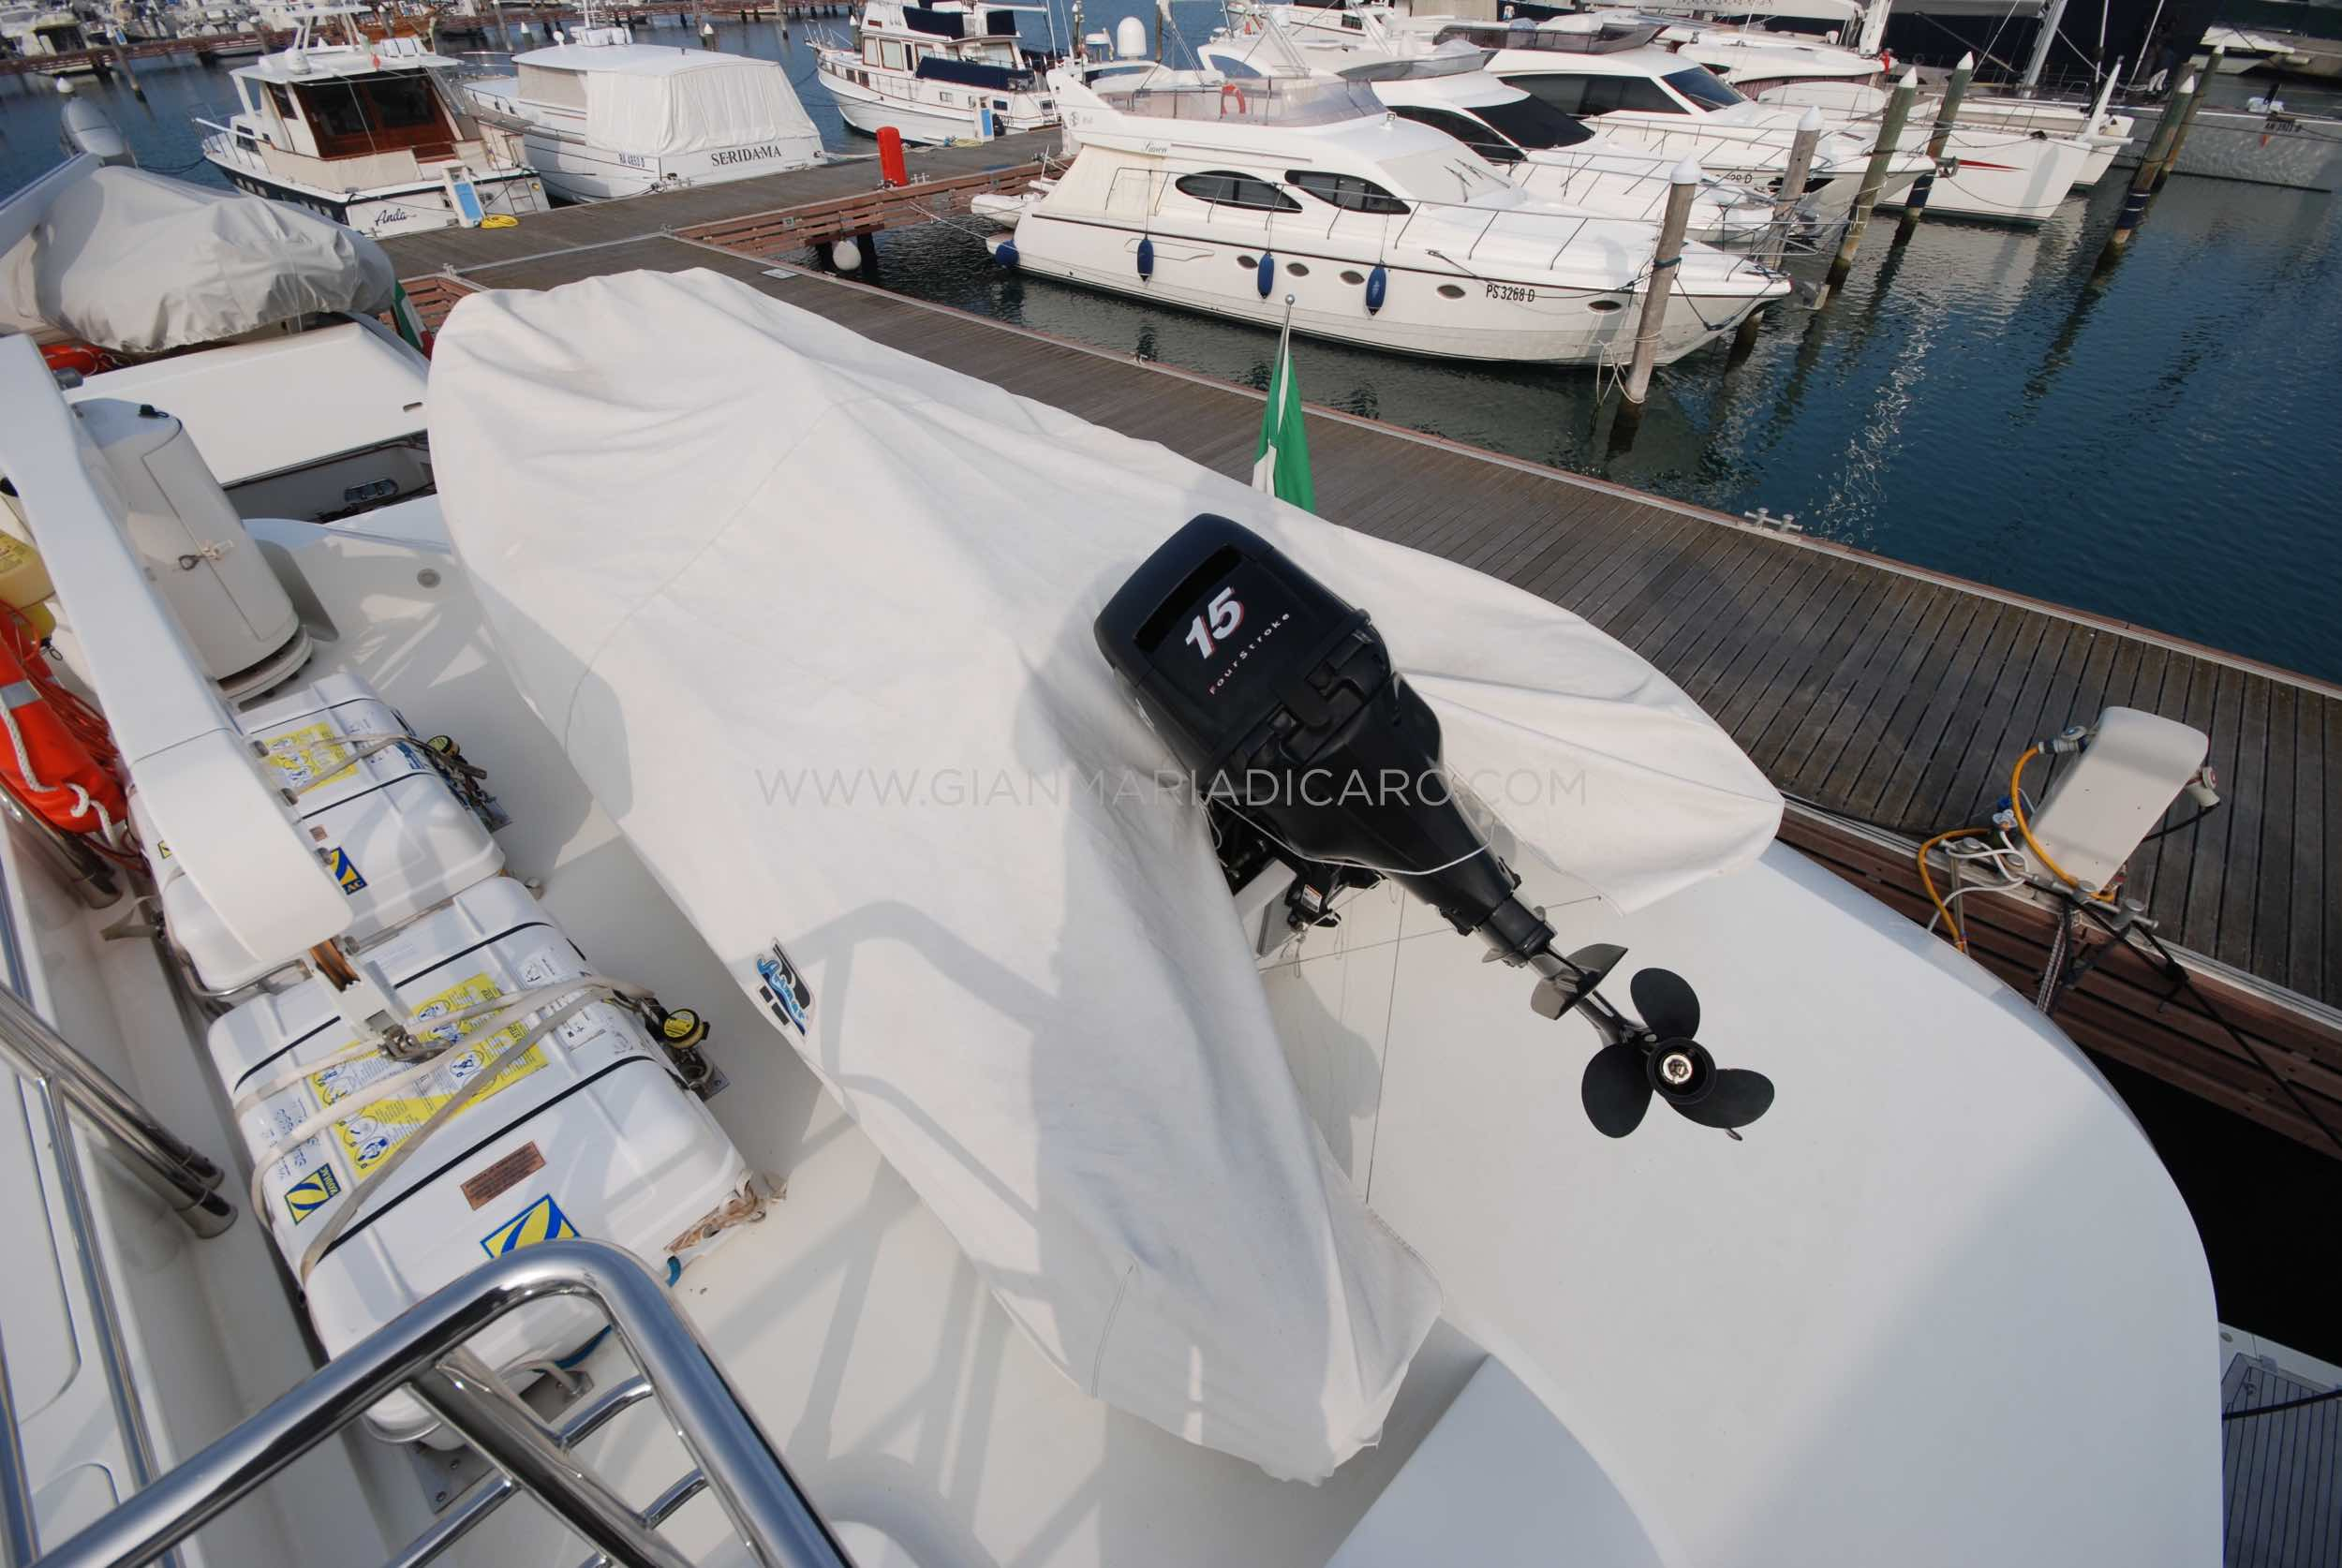 emys-yacht-22-unica-for-sale-83.jpg